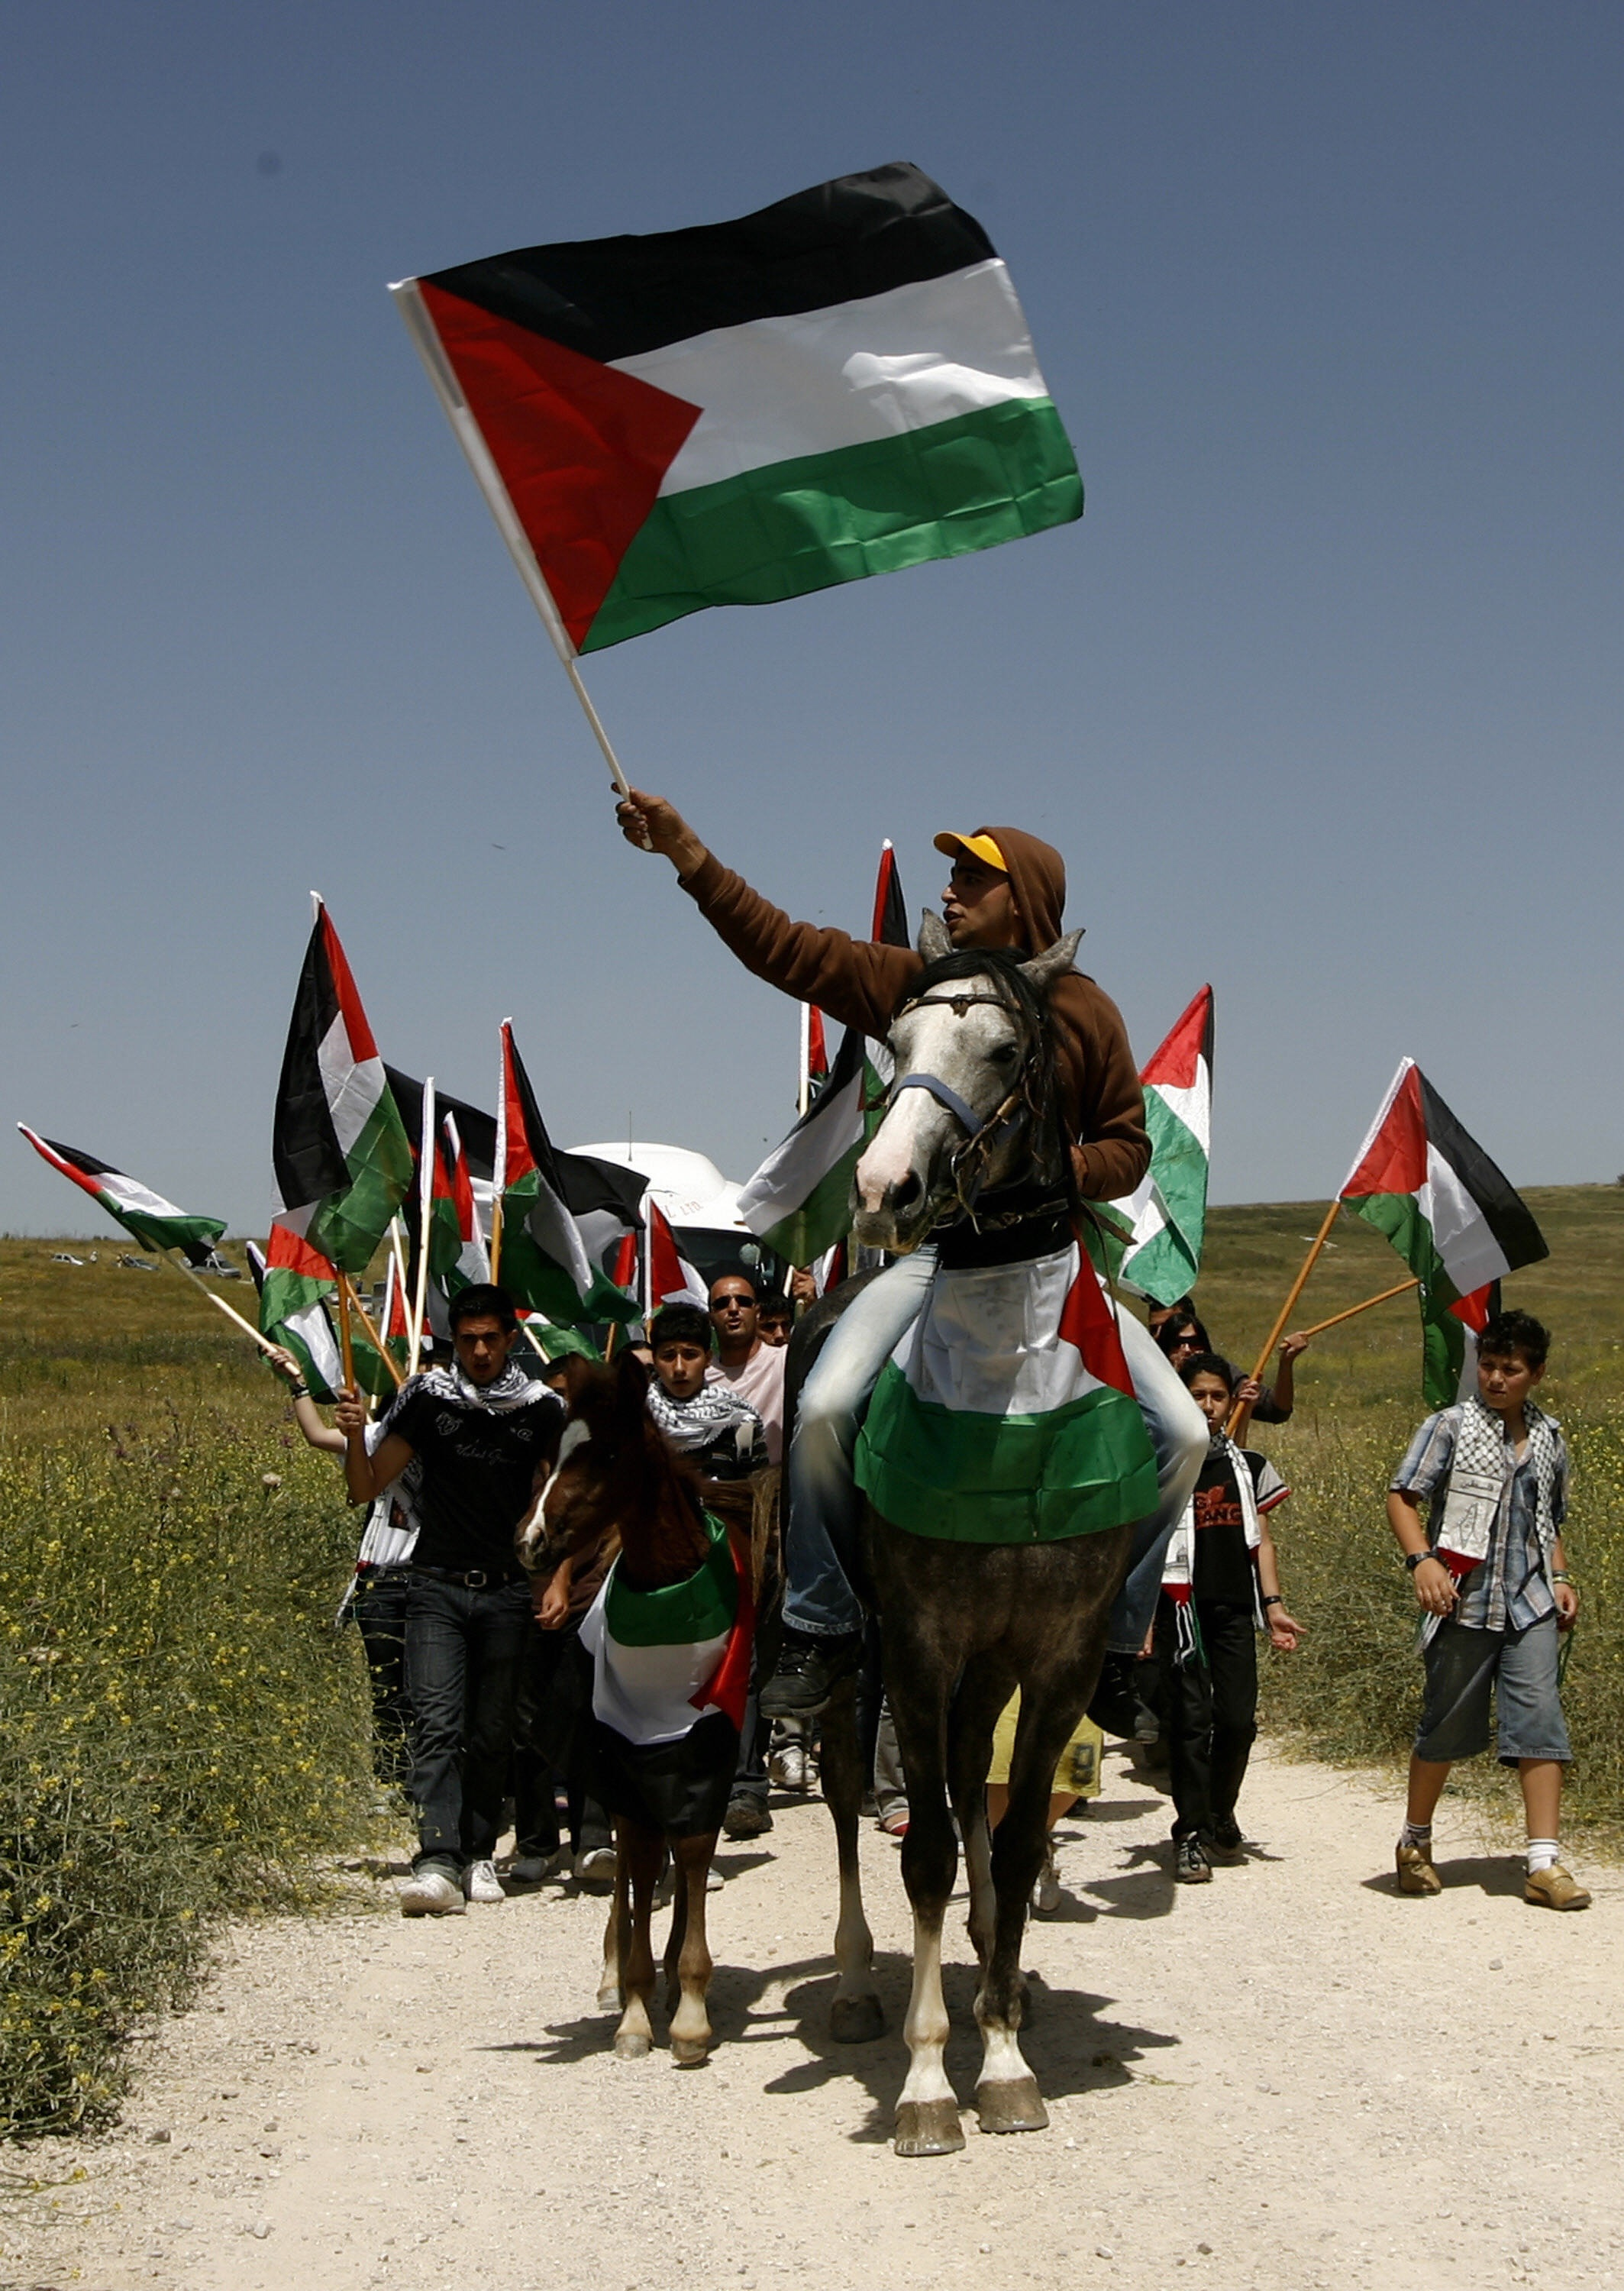 AHMAD GHARABLI/AFP/Getty Images. Arab-Israeli youths, one of them waving a national Palestinian flag, ride horses during a demonstration on April 29, 2009 to demand the right of return to the lands from which they were chased in 1948 on the site of al-Kafrayn, an Arab village among the more than 500 that were razed by Israeli forces at the time of the creation of the Jewish state in 1948.